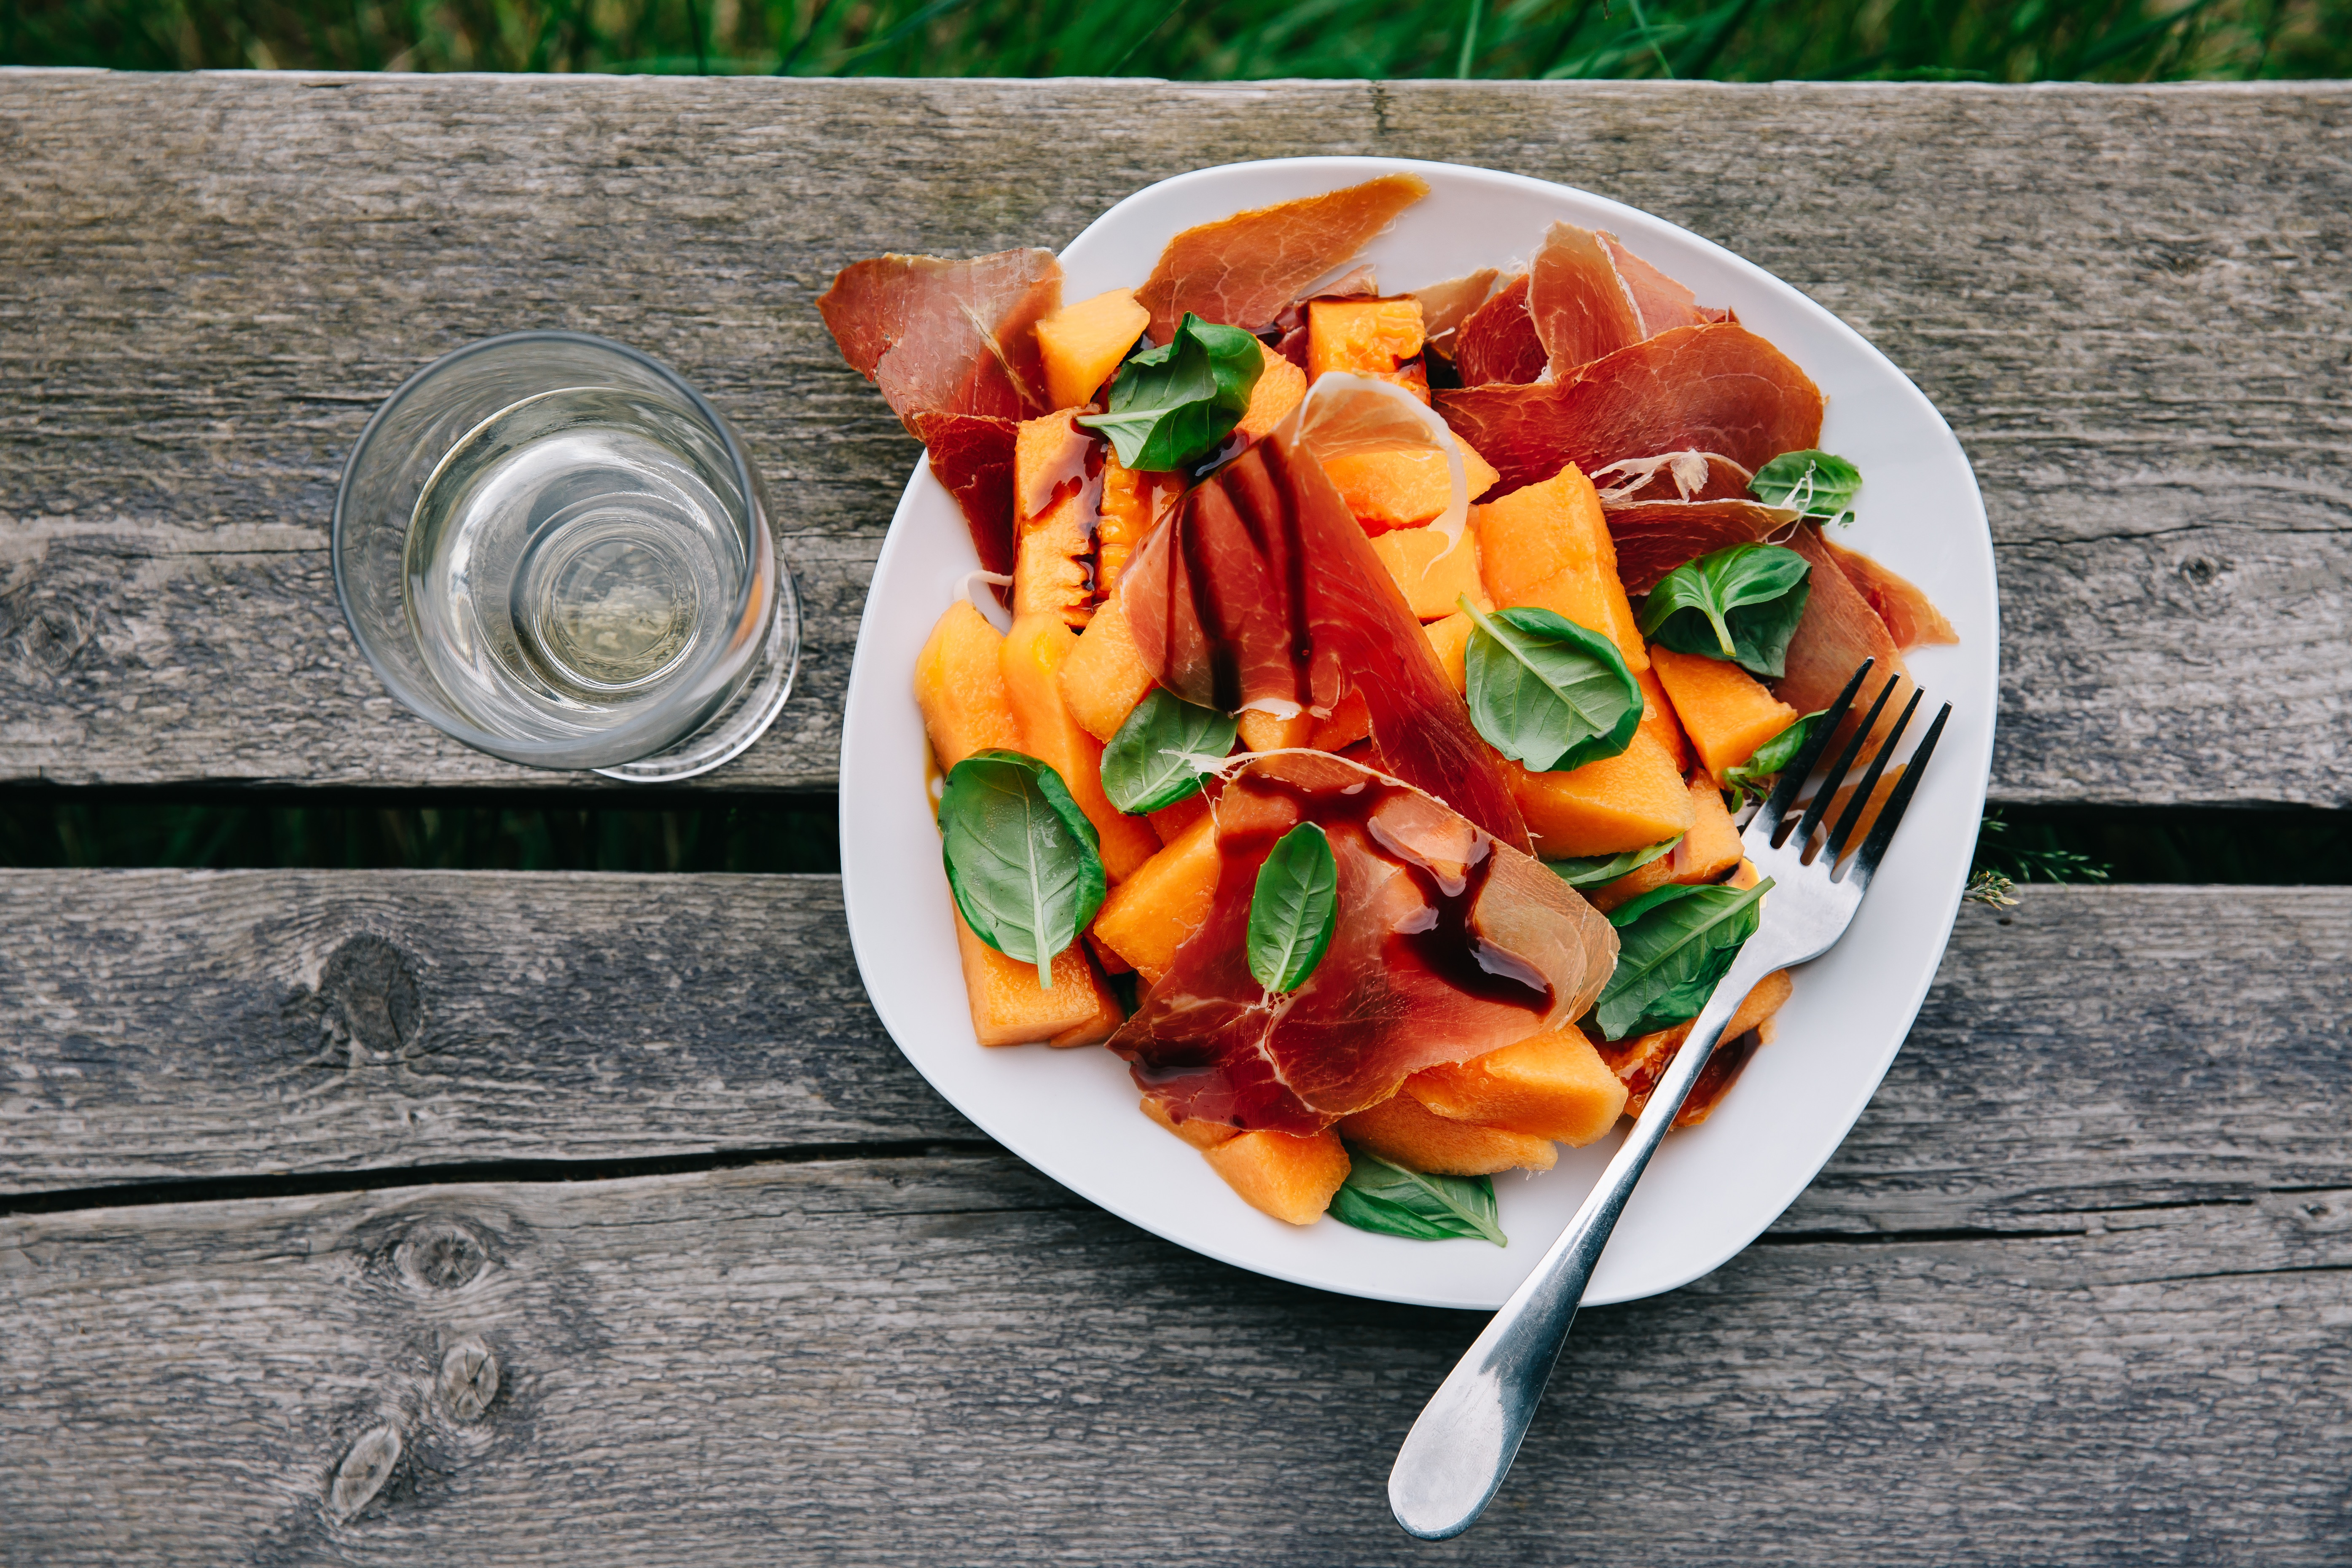 An overhead shot of a melon and prosciutto salad on a wooden picnic table.